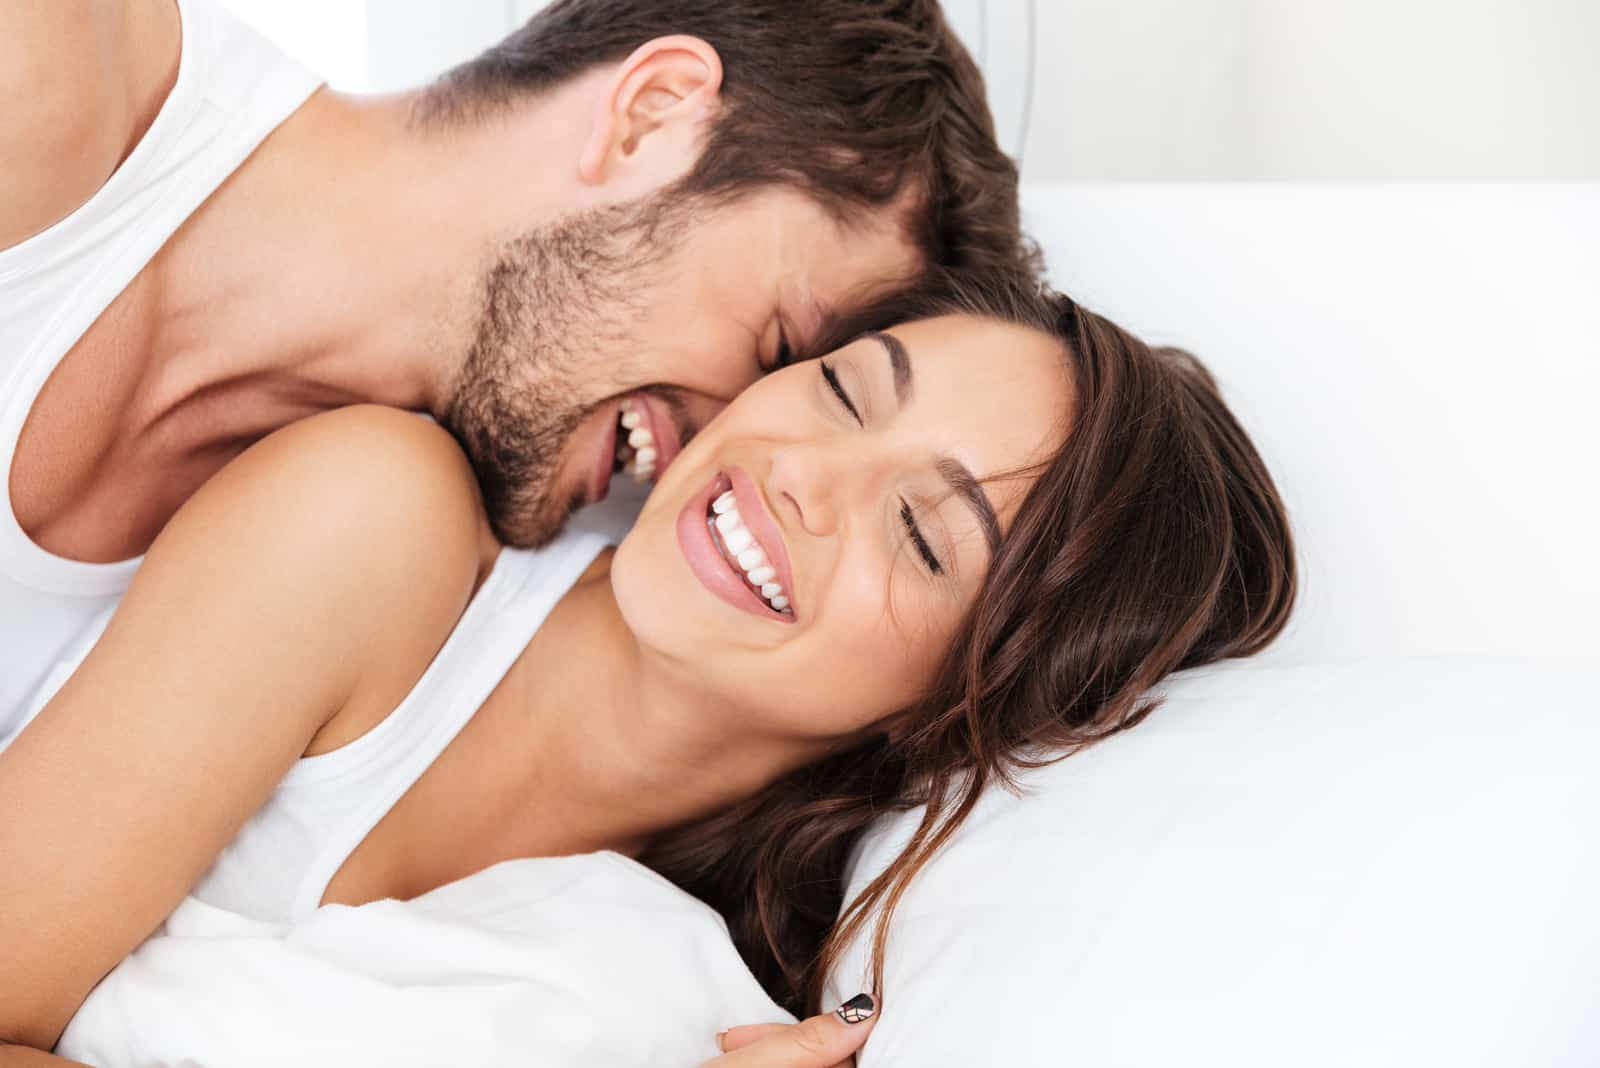 the man hugged the smiling woman in bed